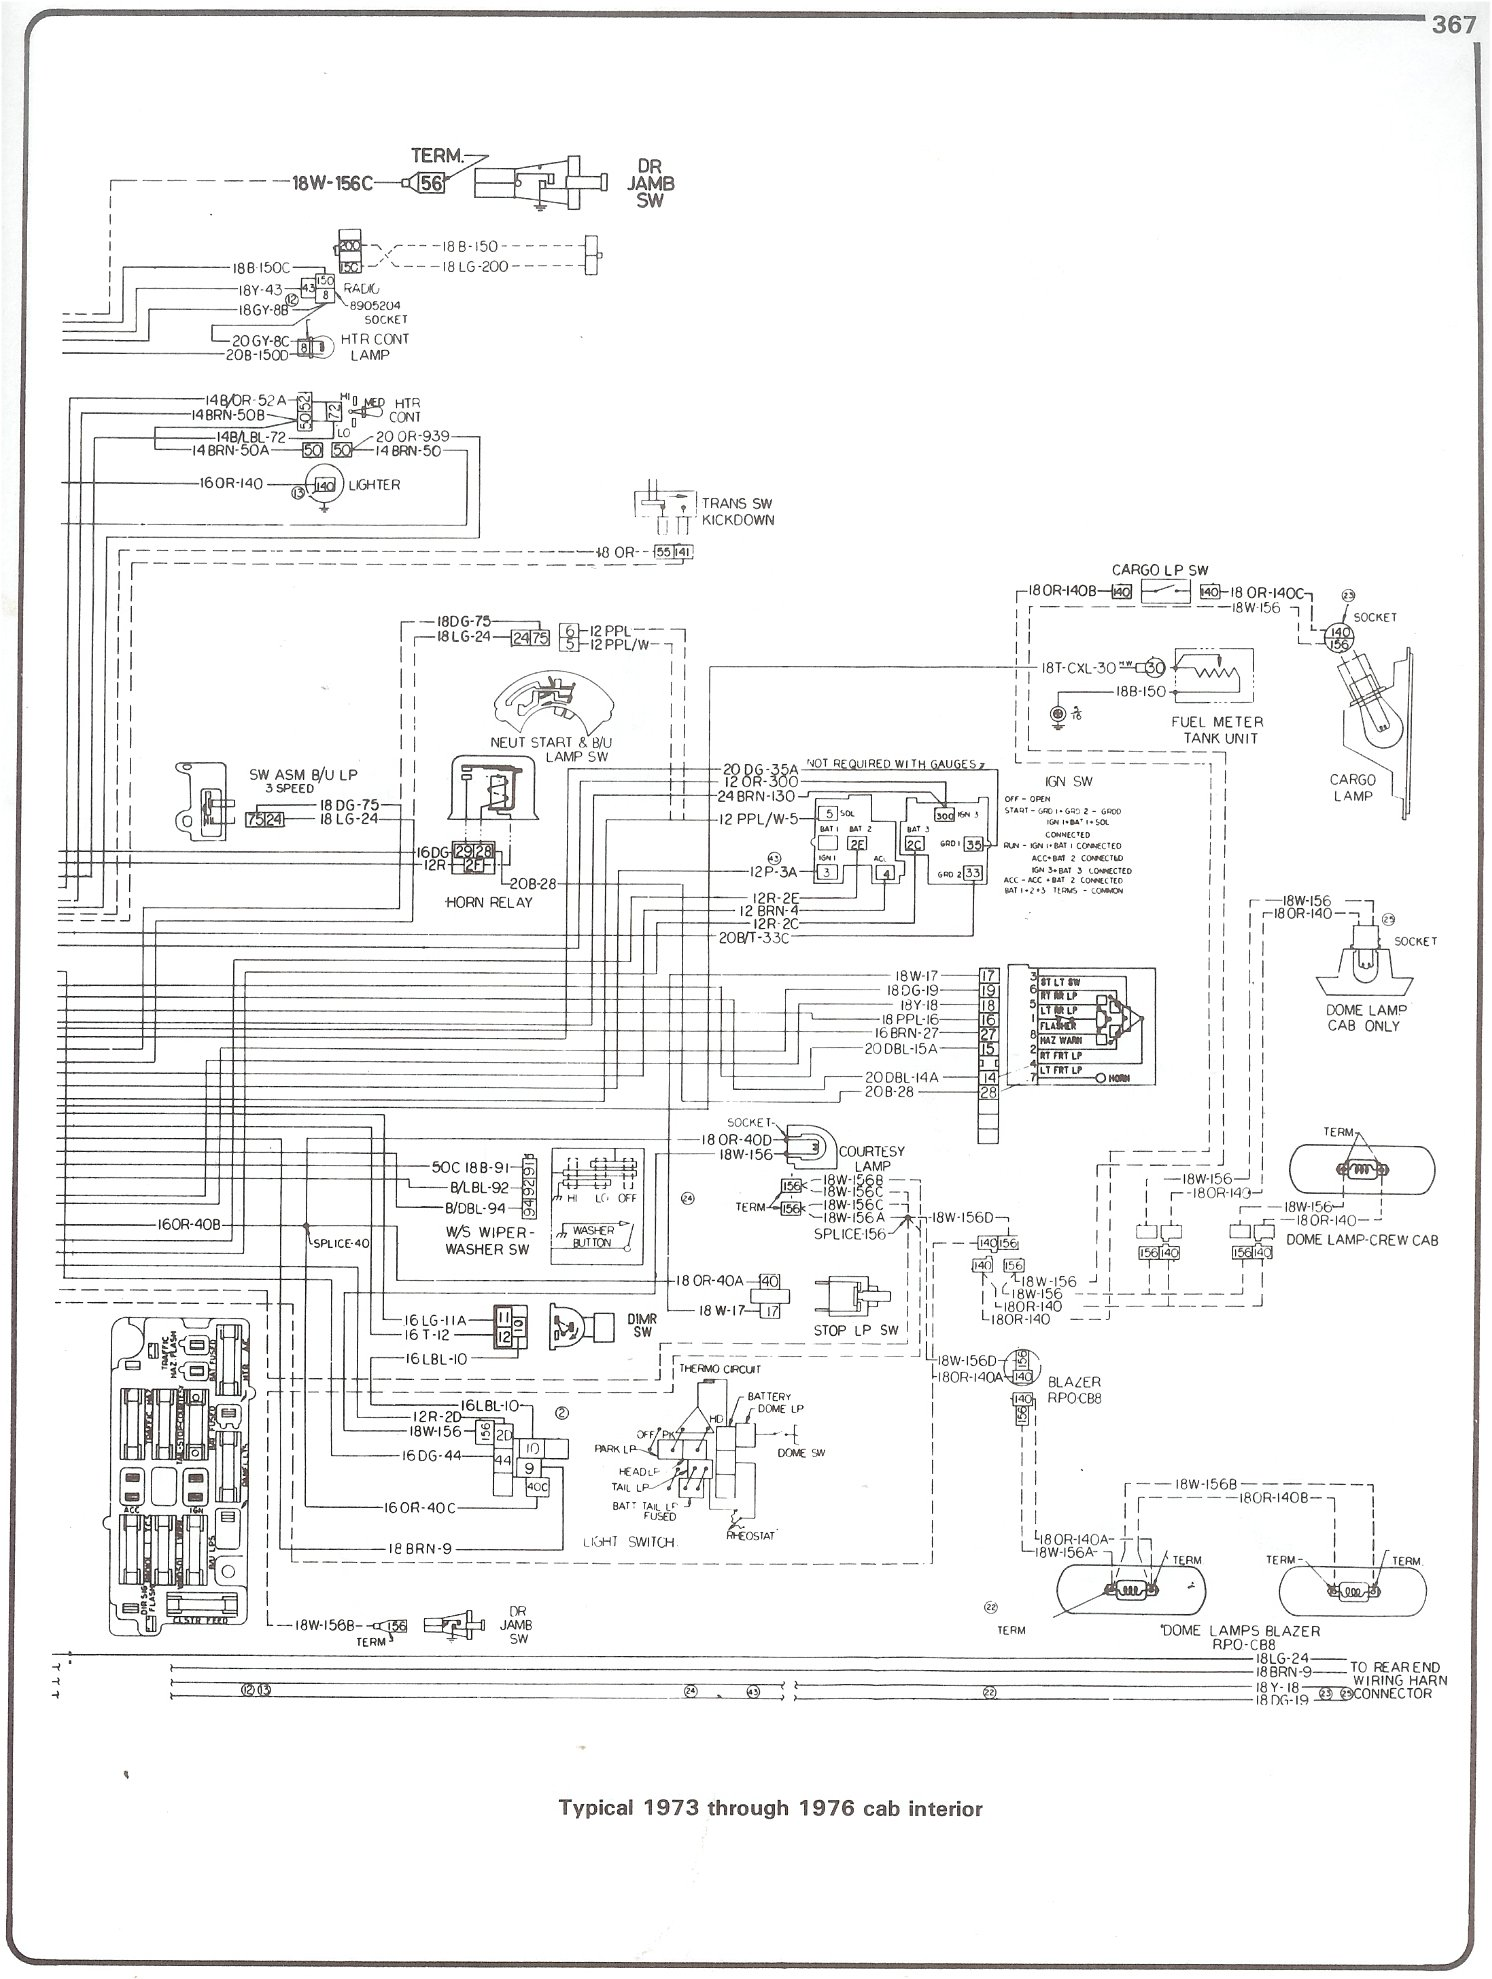 wiring diagram 1973 1976 chevy pickup get free image 1976 chevrolet truck wiring diagram 1976 chevy truck headlight wiring diagram